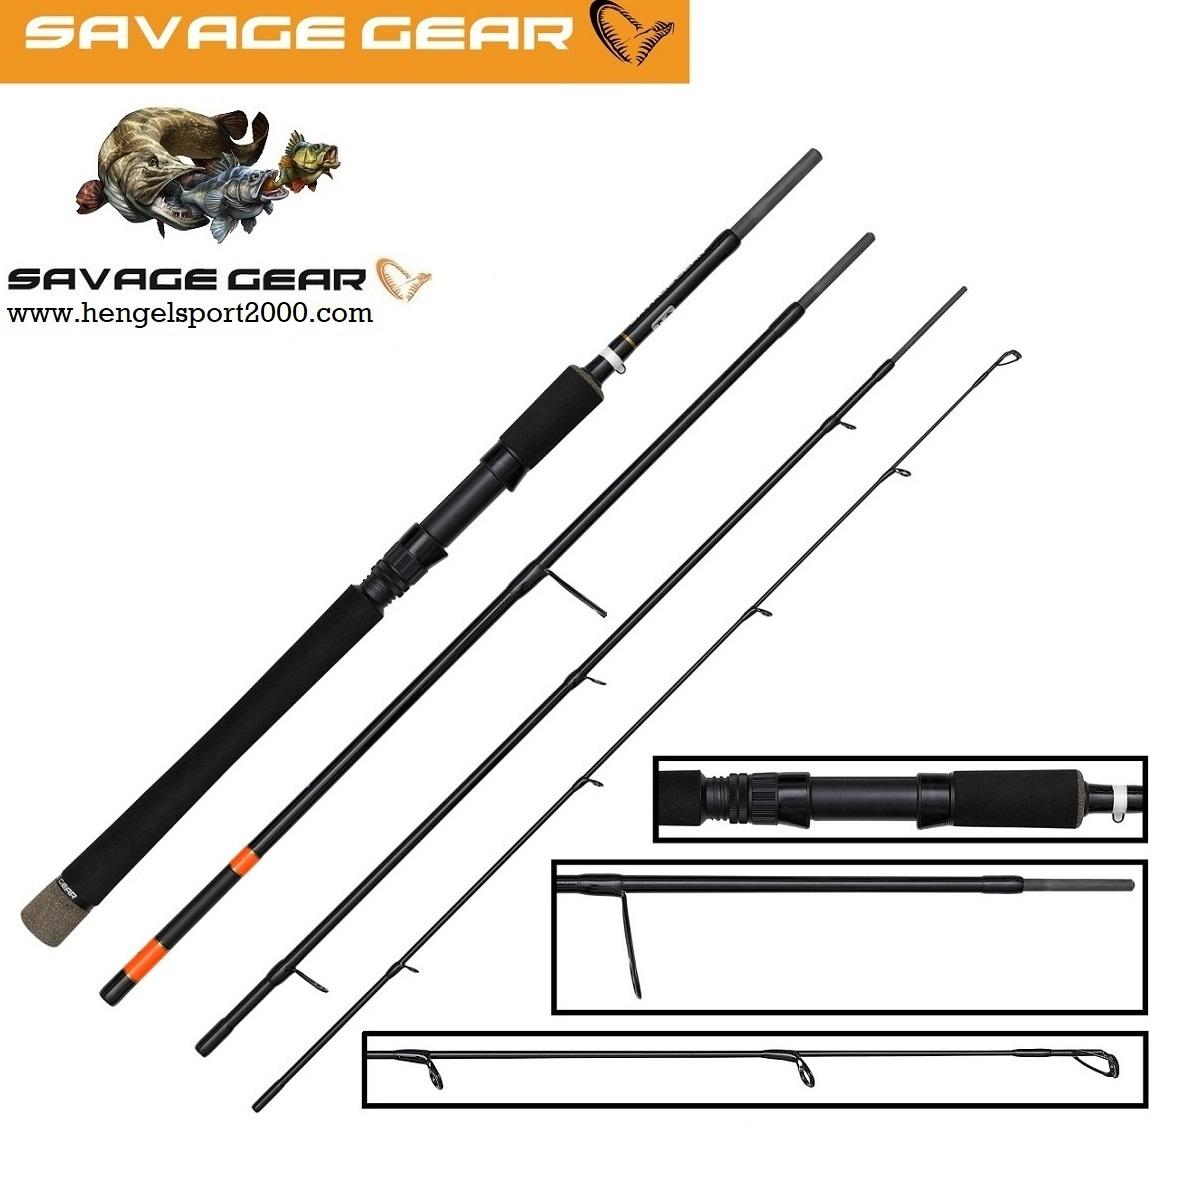 Savage Gear Multi Purpose Predator2 Travel  213cm 20 - 60 gram